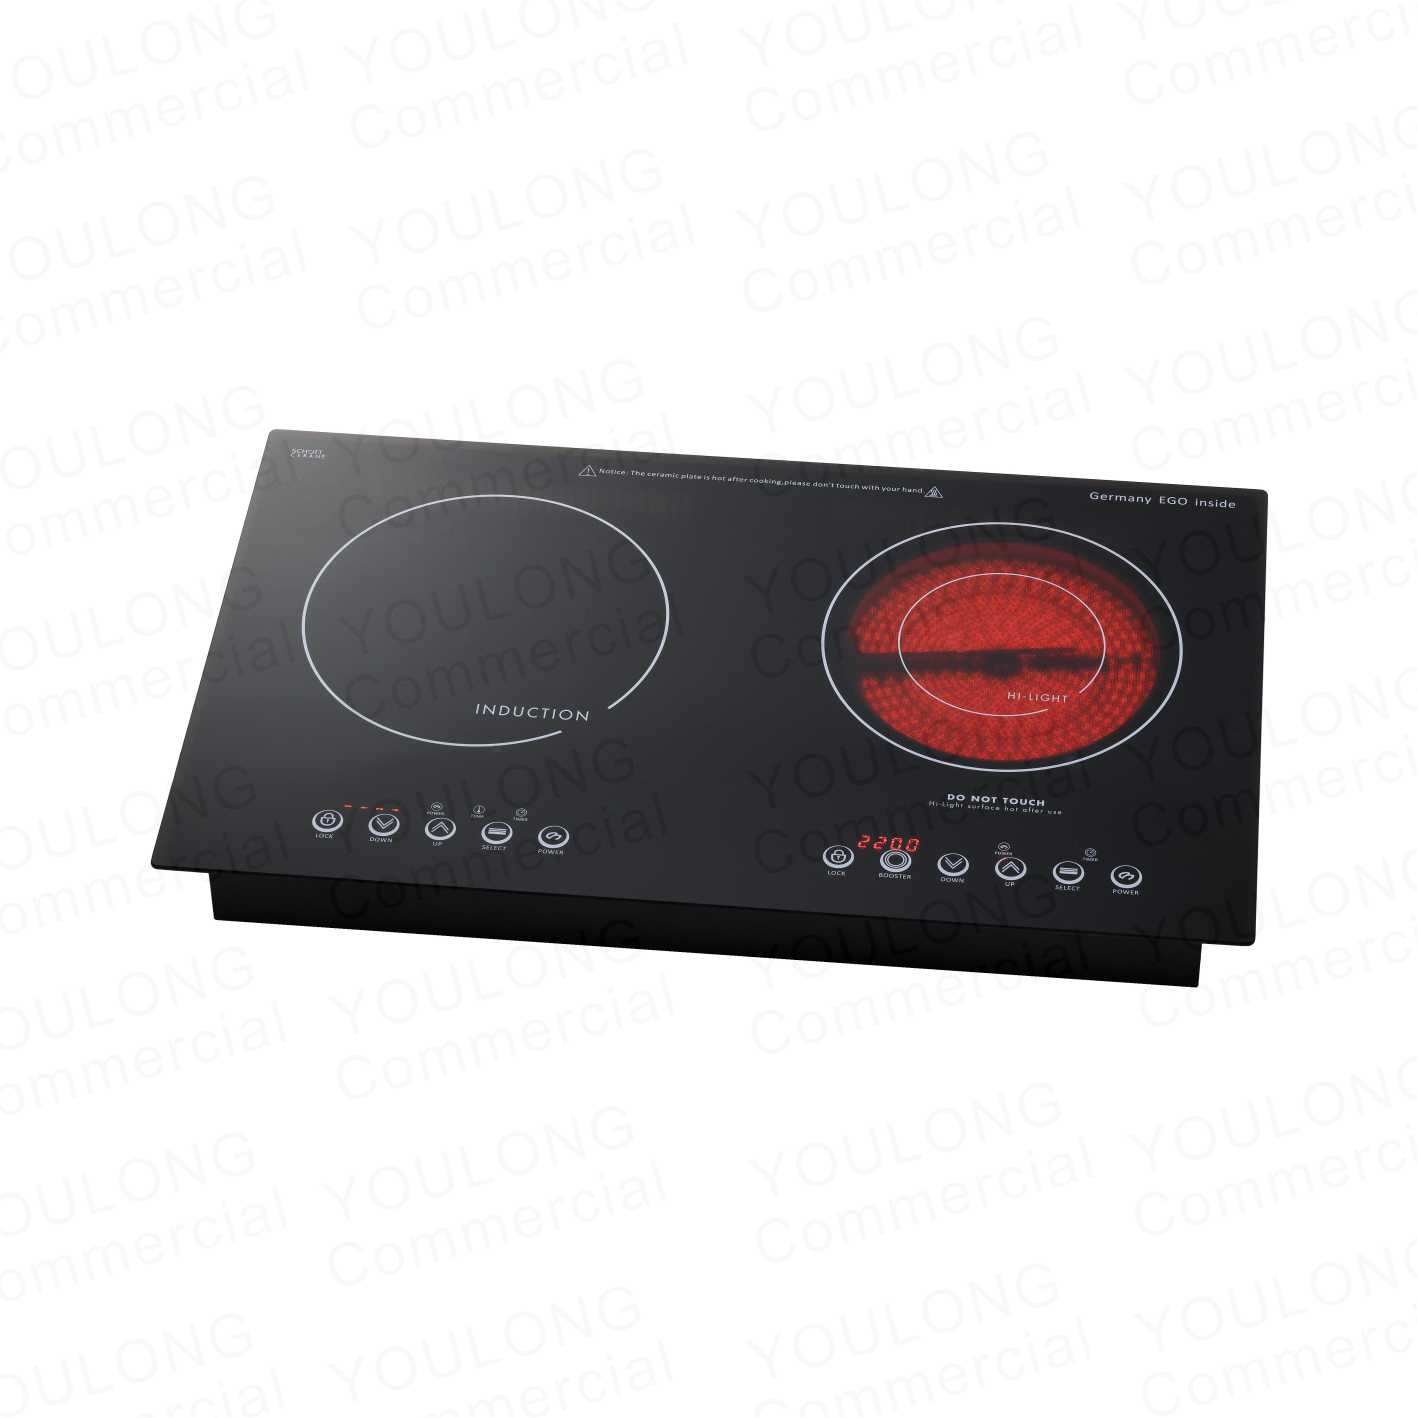 DIT-400(2)Mix induction and Ceramic hob